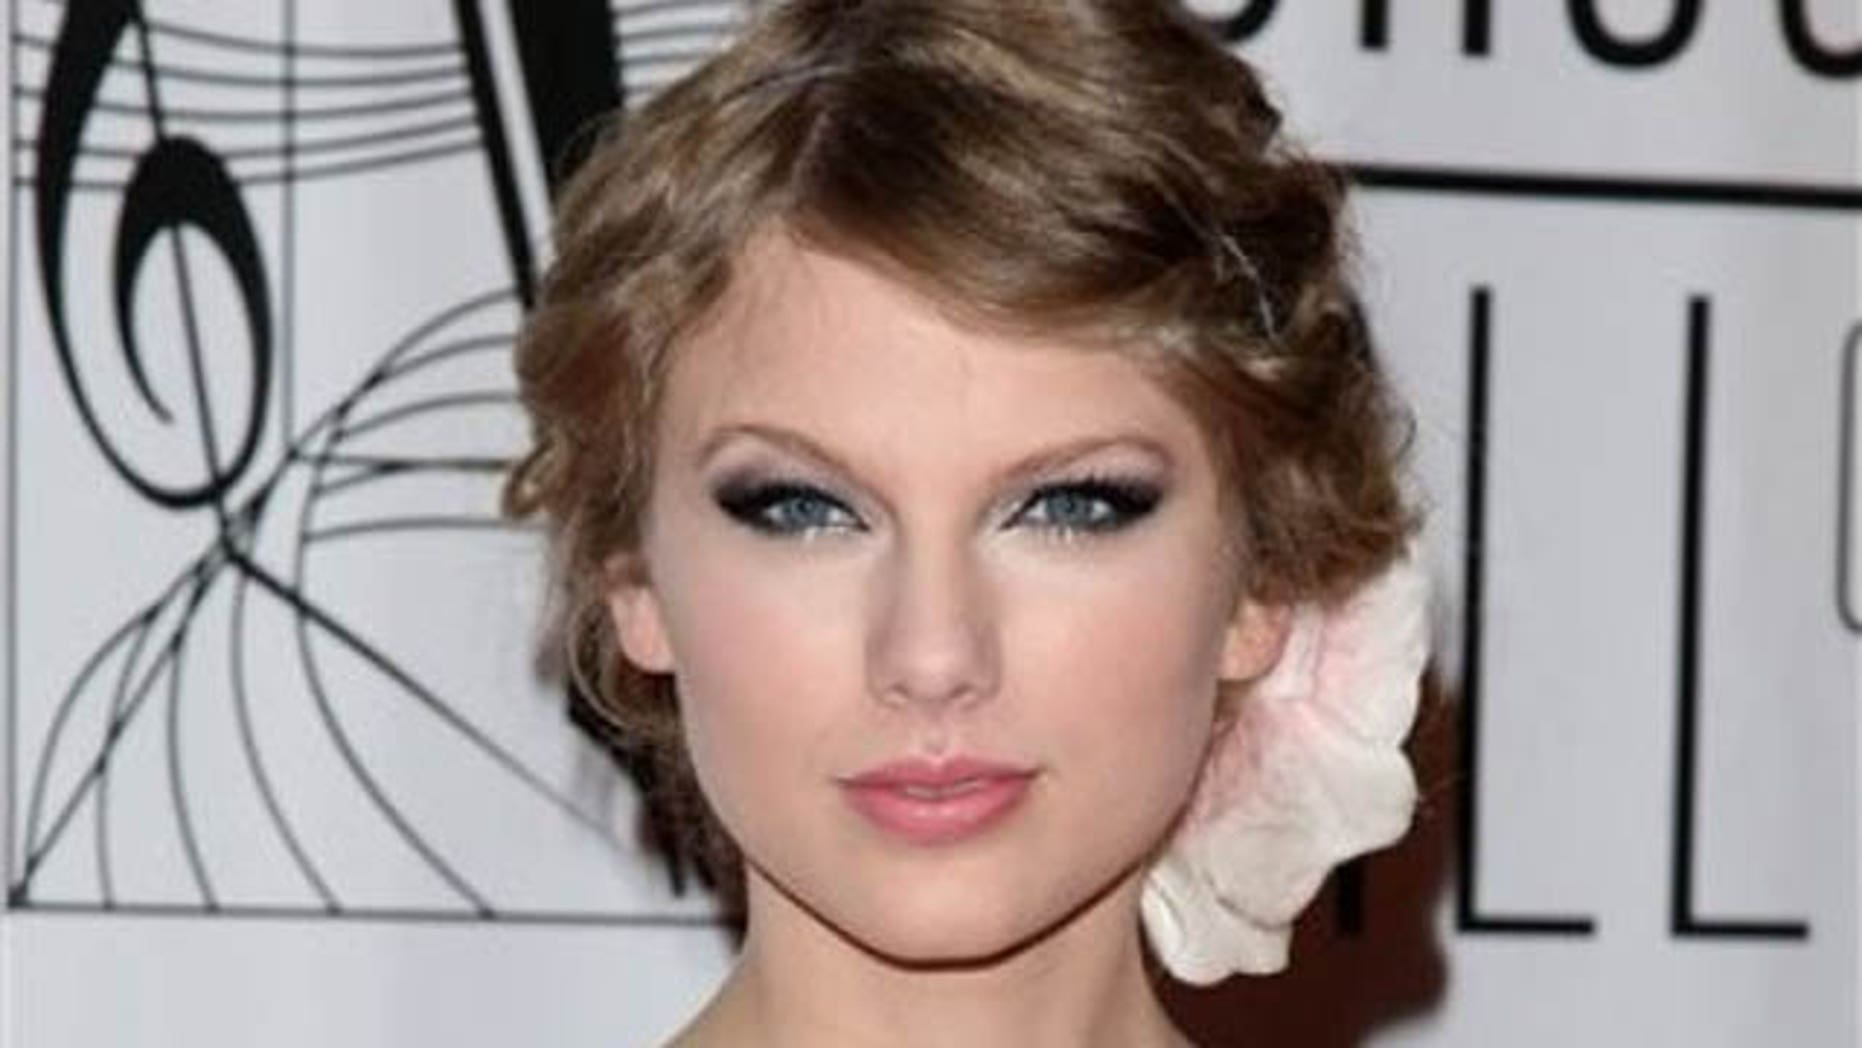 June 17: Singer Taylor Swift attends the 2010 Songwriters Hall of Fame awards gala in New York.